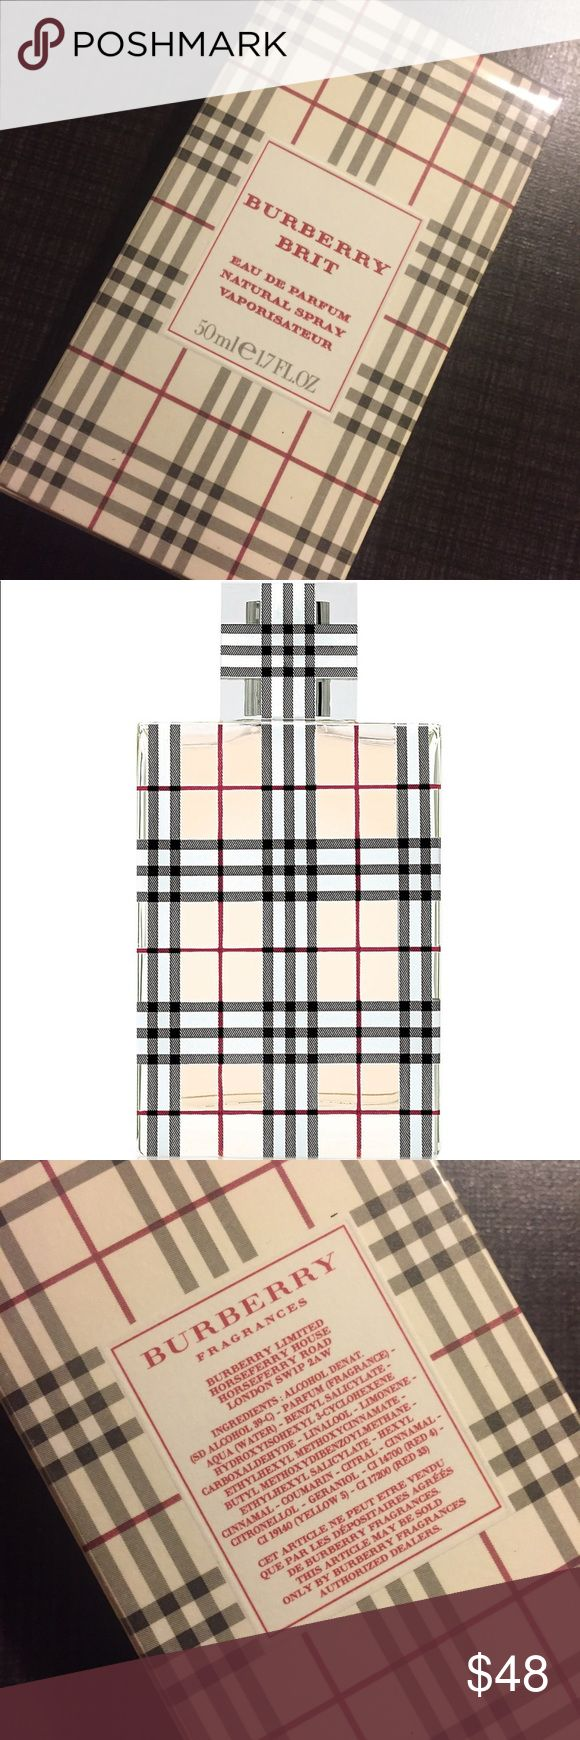 Burberry Brit eau de parfum 1.7 OZ Burberry Brit perfume! I never opened this, but I do have another bottle that I use and it's a wonderful scent! So rich and elegant! Burberry Makeup